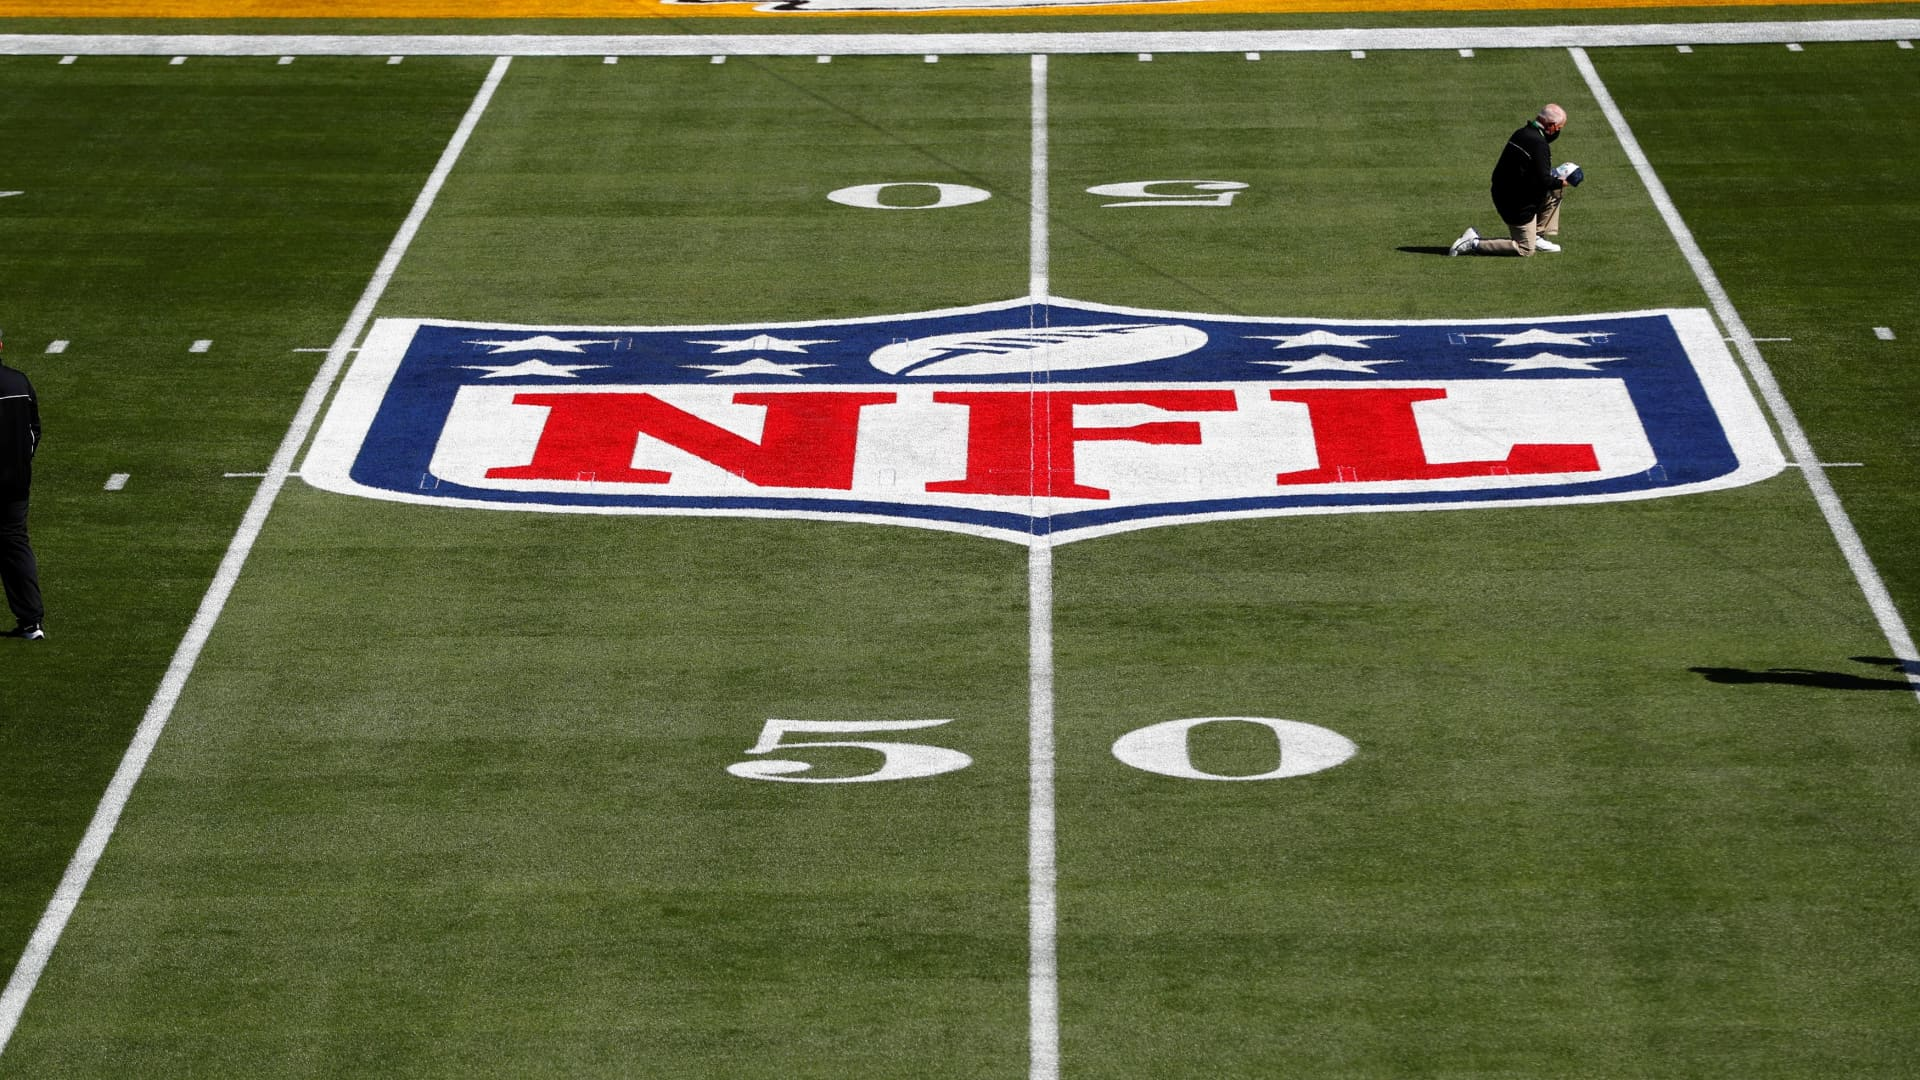 General view of the NFL Shield logo on the field before Super Bowl LV between the Tampa Bay Buccaneers and the Kansas City Chiefs at Raymond James Stadium.